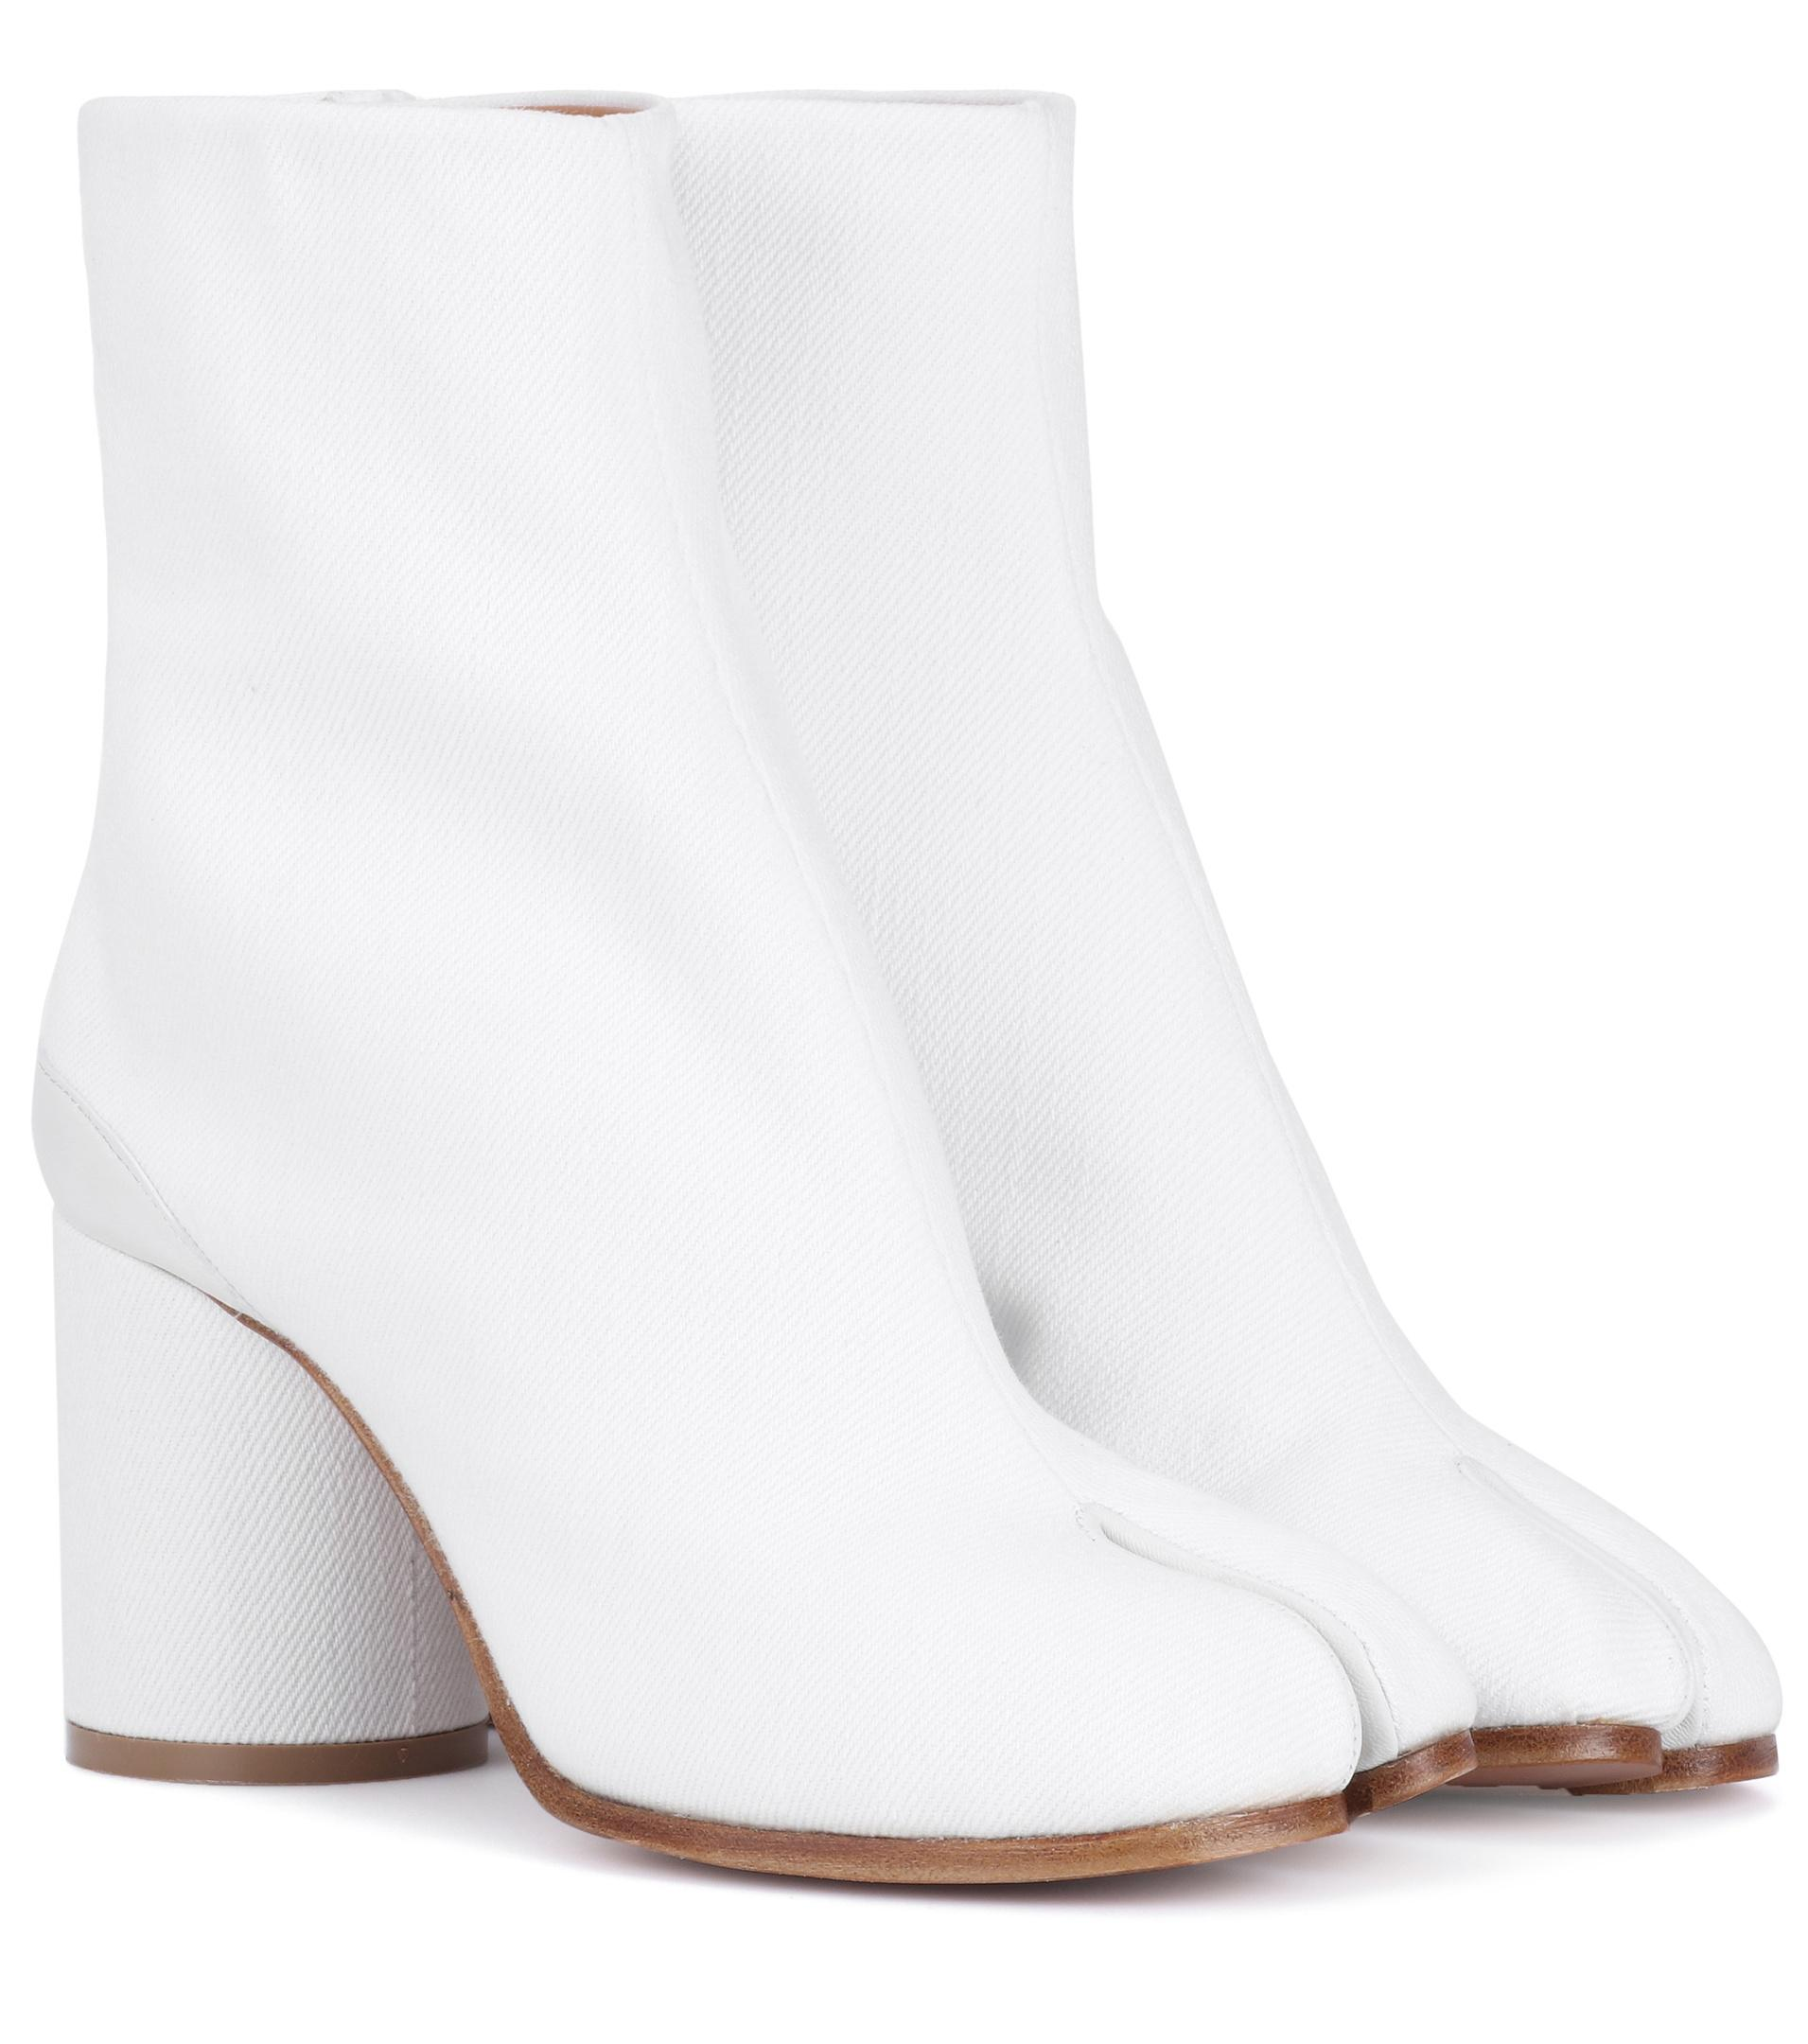 exclusive shoes performance sportswear exquisite style Maison Margiela Tabi Leather Ankle Boots in White - Save 56% - Lyst